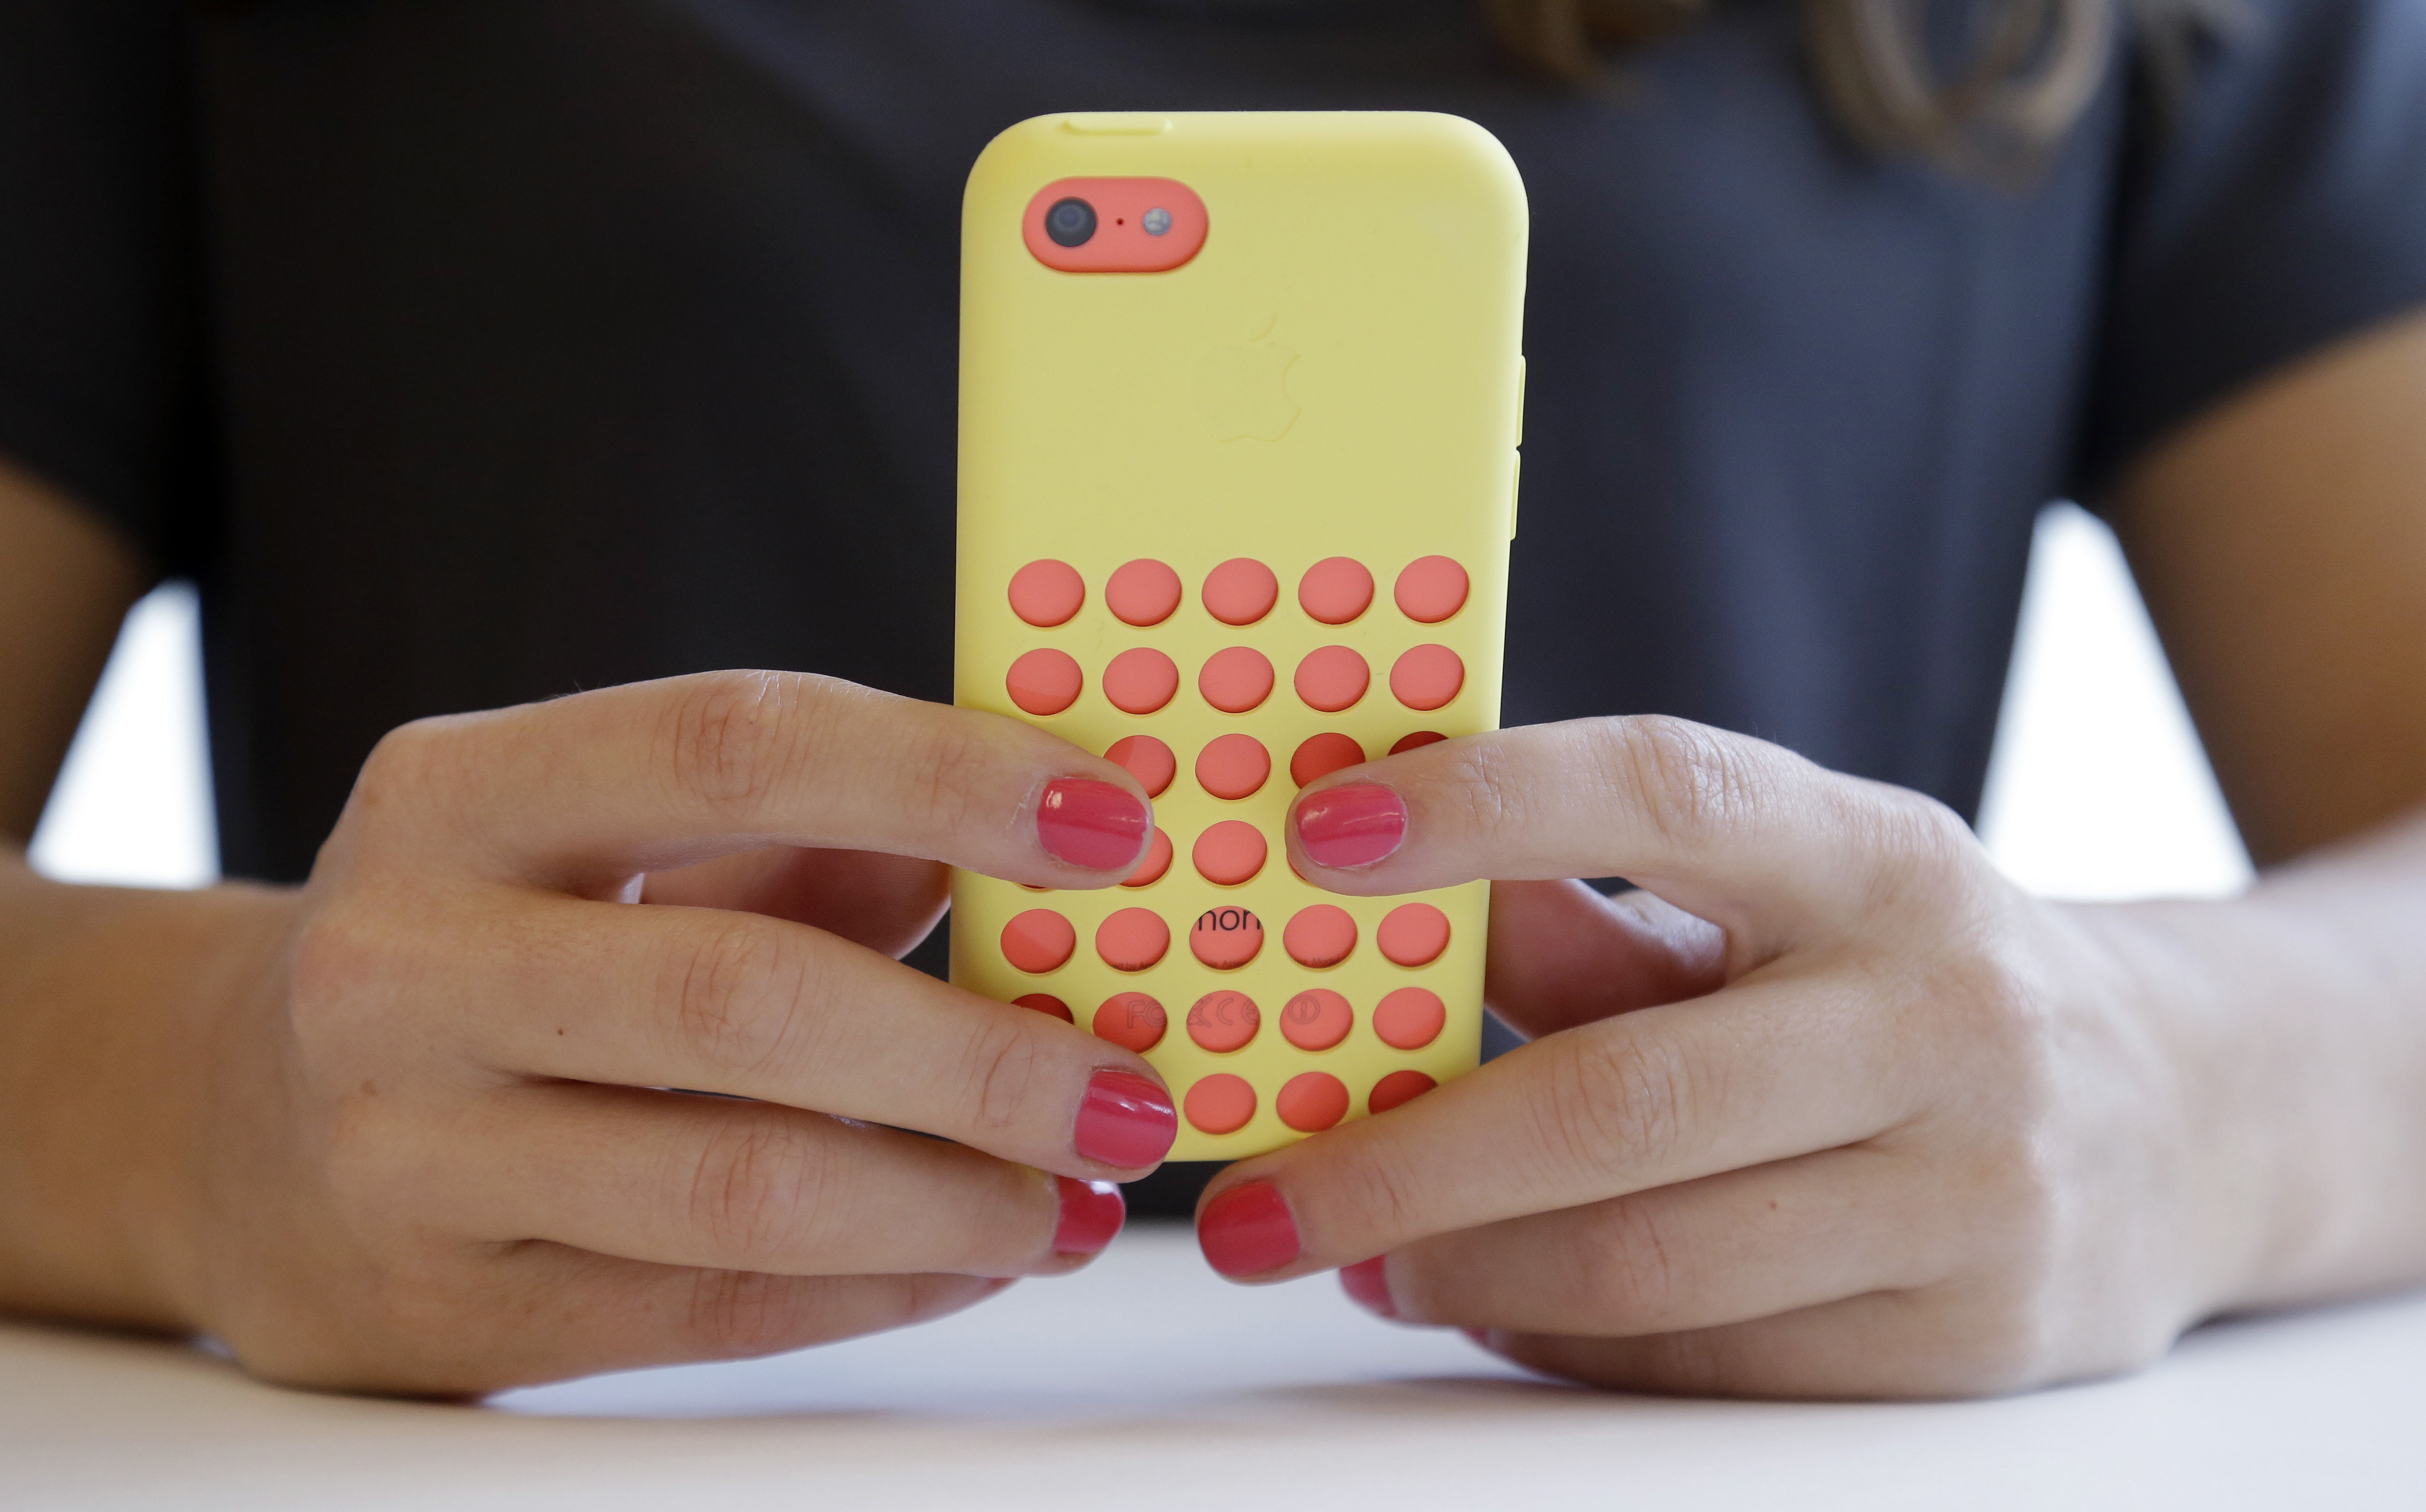 Excessive playing of Candy Crush ruptures man's tendon, fuels addiction concerns